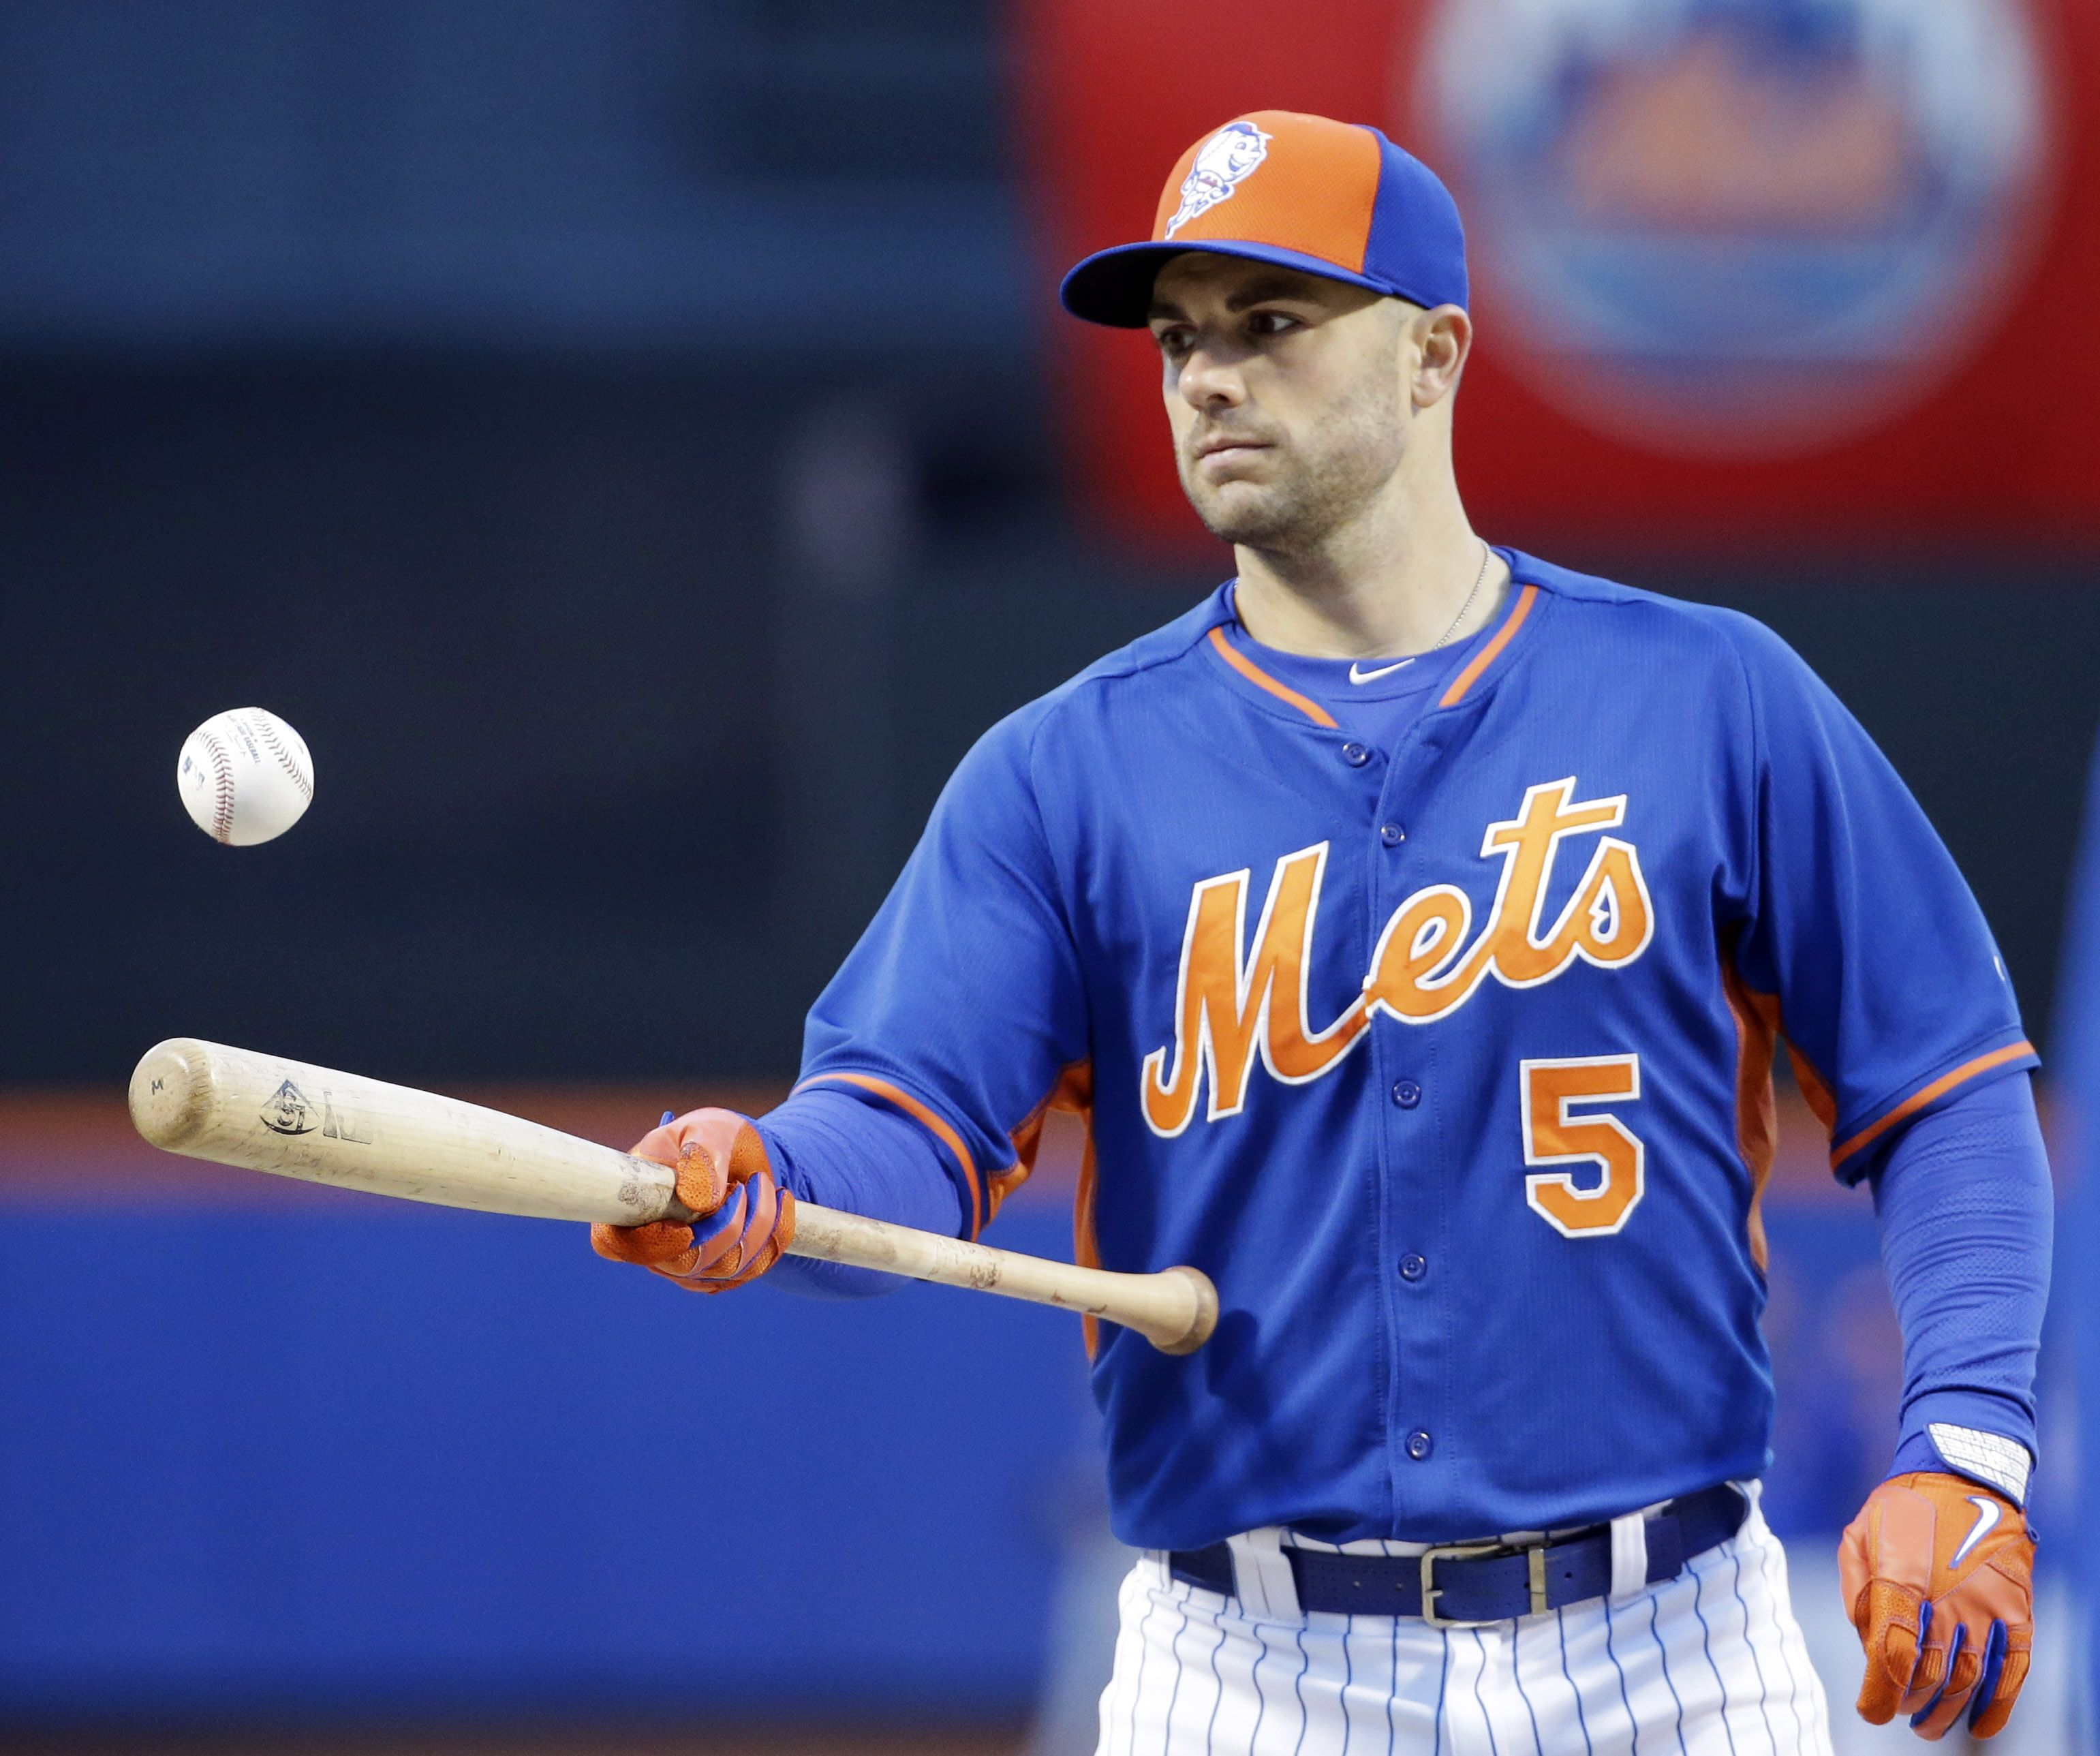 New York Mets' David Wright warms up before Game 2 of the National League baseball championship series against the Chicago Cubs Sunday, Oct. 18, 2015, in New York.